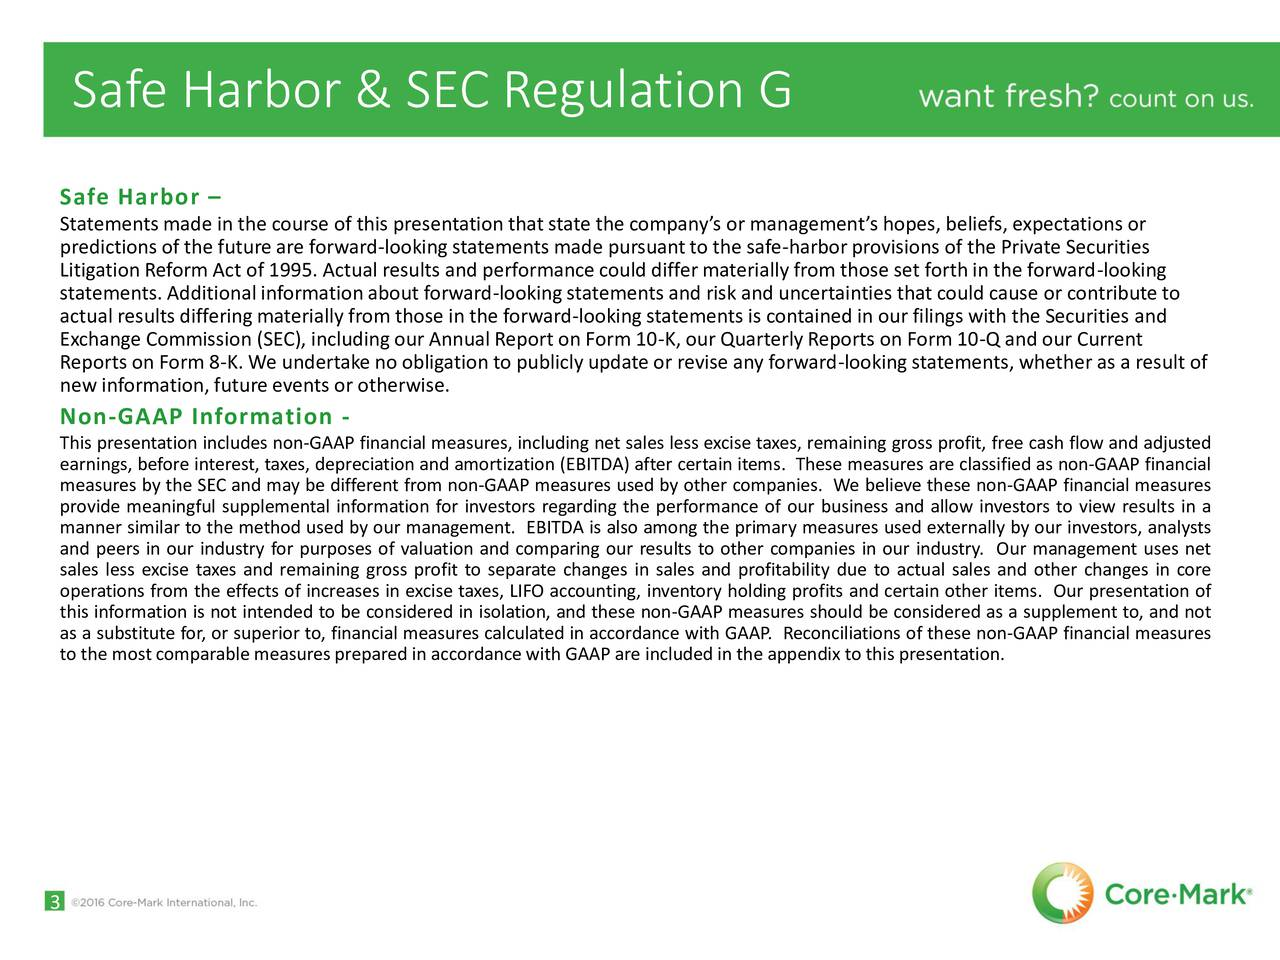 Safe Harbor Statementsmade in the course of this presentation that state the companys or managements hopes, beliefs, expectations or predictions of the future are forward-lookingstatements made pursuantto the safe-harborprovisions of the Private Securities Litigation Reform Act of 1995. Actual results and performance could differmaterially from those set forth in the forward-looking statements. Additional informationabout forward-lookingstatements and risk and uncertainties that could cause or contribute to actual results differingmaterially from those in the forward-lookingstatements is contained in our filings with the Securities and Exchange Commission (SEC), includingour Annual Report on Form 10-K, our QuarterlyReports on Form 10-Q and our Current Reports on Form 8-K. We undertake no obligation to publicly update or revise any forward-lookingstatements, whether as a result of new information, future events or otherwise. Non-GAAP Information - This presentation includes non-GAAP financial measures, including net sales less excise taxes, remaining gross profit, free cash flow and adjusted measures by the SEC and may be different from non-GAAP measures used by other companies. We believe these non-GAAP financial measuresAP financial provide meaningful supplemental information for investors regarding the performance of our business and allow investors to view results in a manner similar to the method used by our management. EBITDA is also among the primary measures used externally by our investors, analysts and peers in our industry for purposes of valuation and comparing our results to other companies in our industry. Our management uses net sales less excise taxes and remaining gross profit to separate changes in sales and profitability due to actual sales and other changes in core operations from the effects of increases in excise taxes, LIFO accounting, inventory holding profits and certain other items. Our presentation of this information is not intended to be considered in isolation, and these non-GAAP measures should be considered as a supplement to, and not as a substitute for, or superior to, financial measures calculated in accordance with GAAP. Reconciliations of these non-GAAP financial measures to the mostcomparablemeasures prepared in accordancewith GAAP are included in the appendix to this presentation. 3